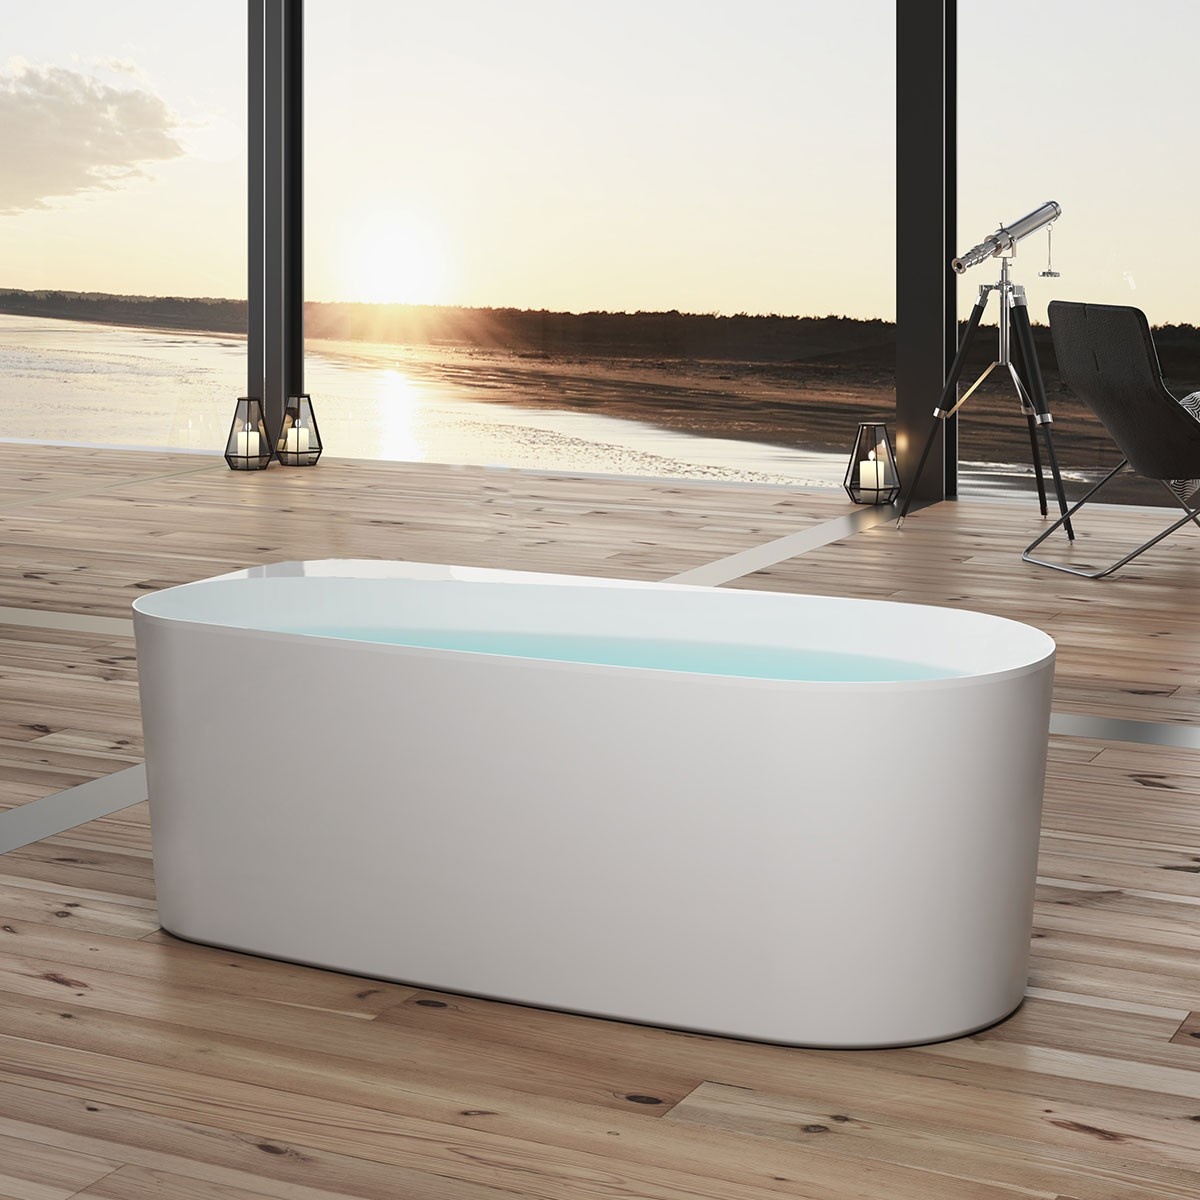 BATHPRO 59 In High-end Freestanding Bathtub - Acrylic Matte White (DK-MF-115573)